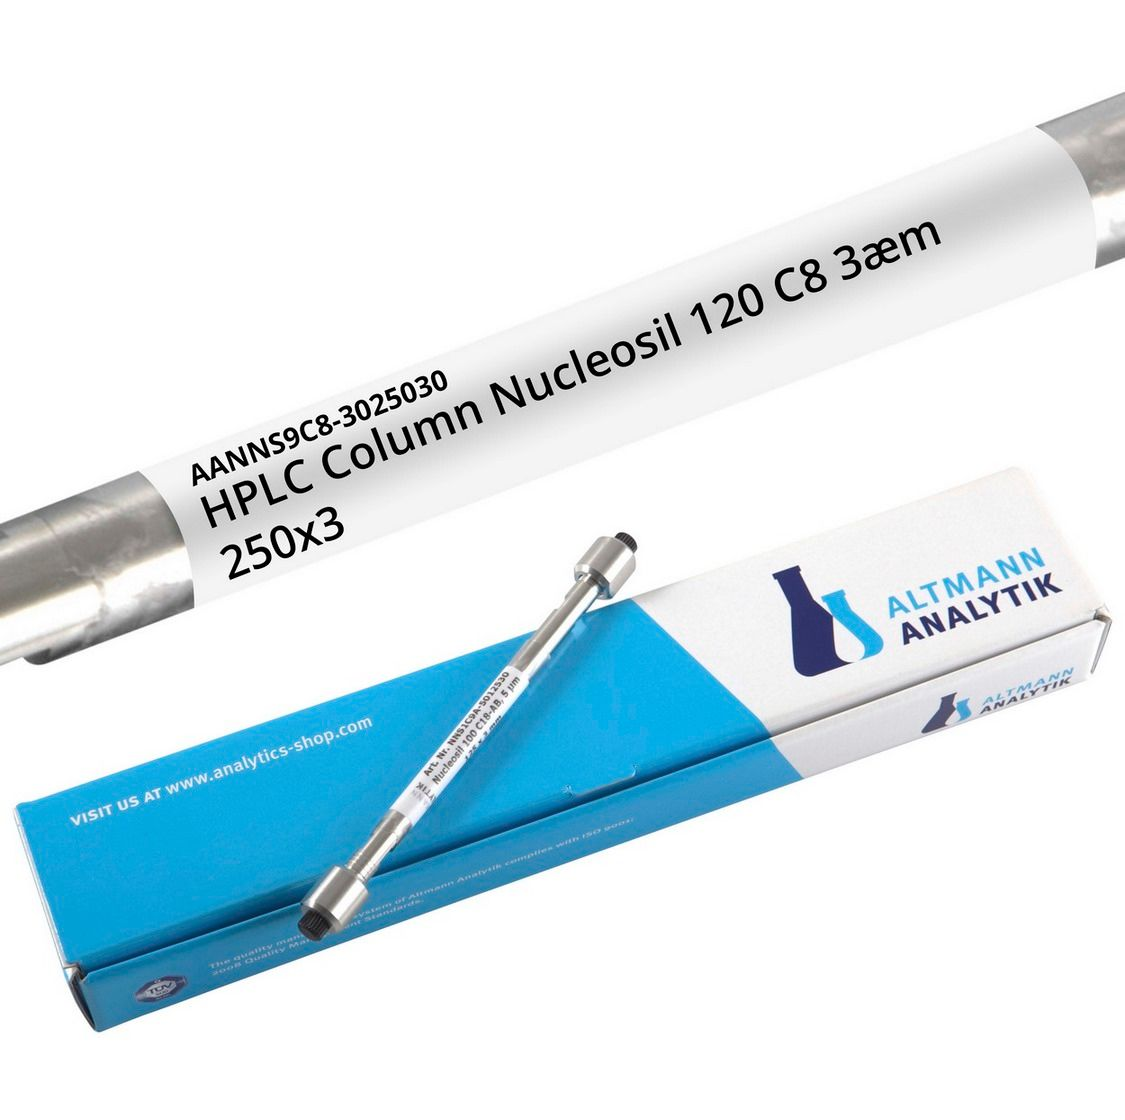 HPLC Column Nucleosil 120 C8 3µm 250x3 mm, 120A